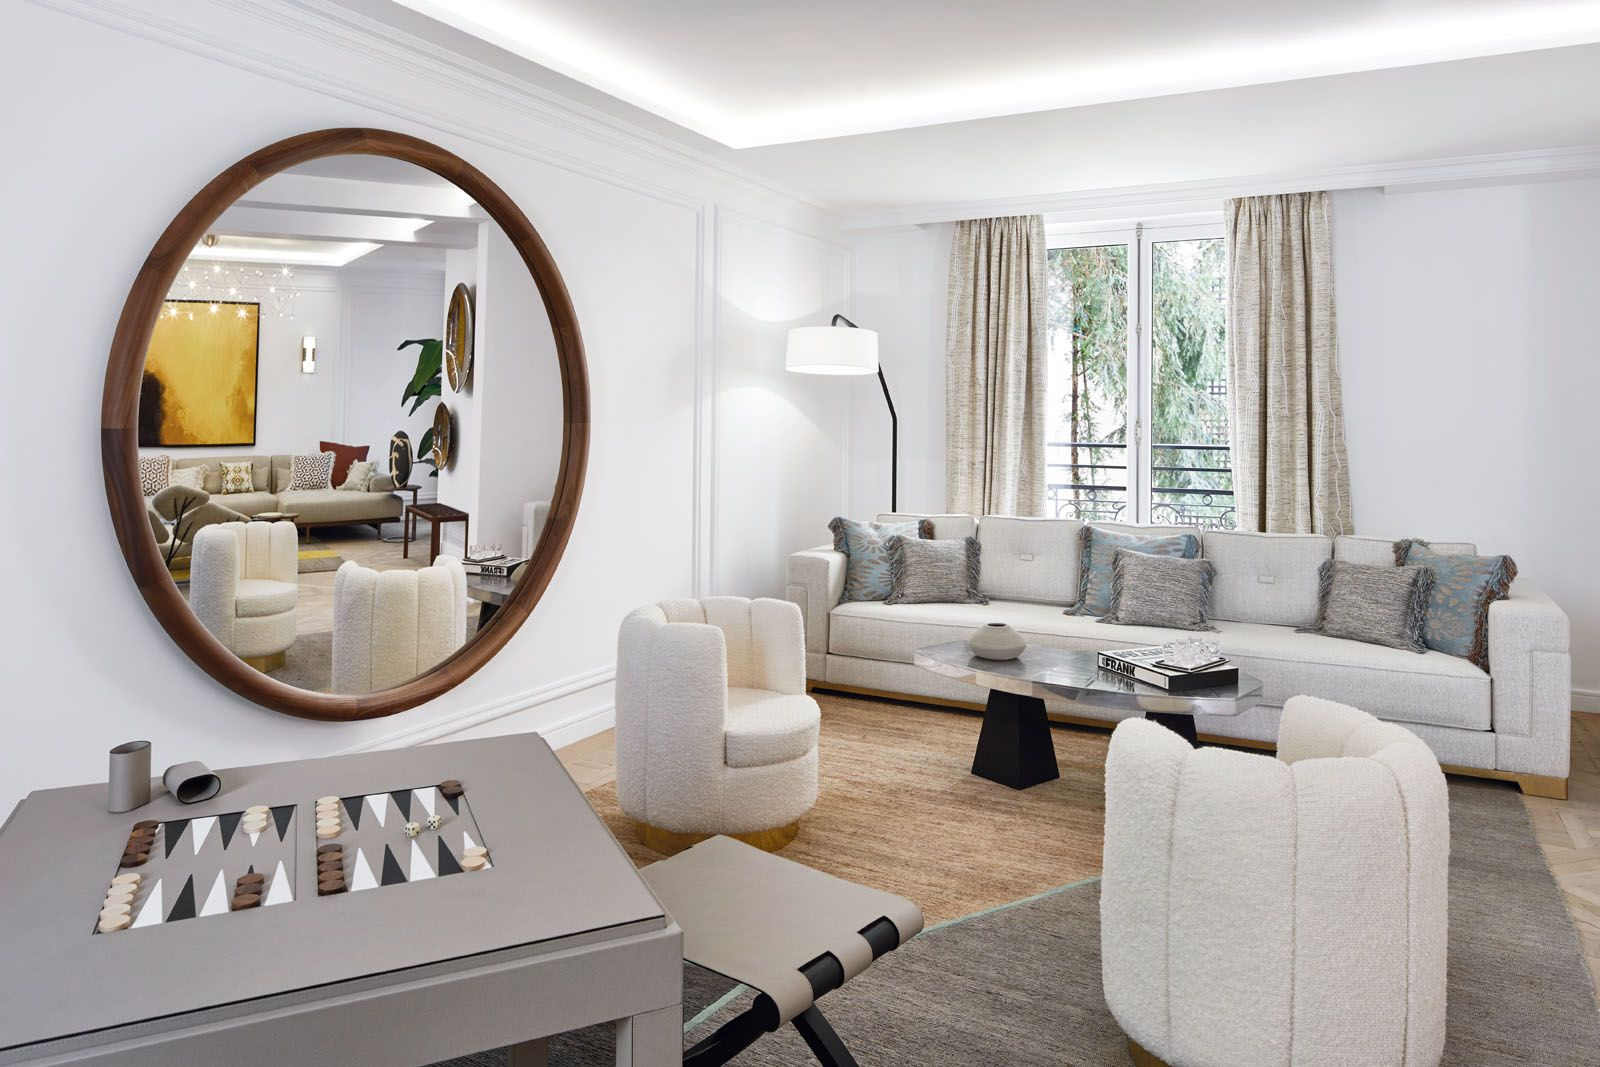 A round mirror frames the colourful tableau of furnishings in the primary living room